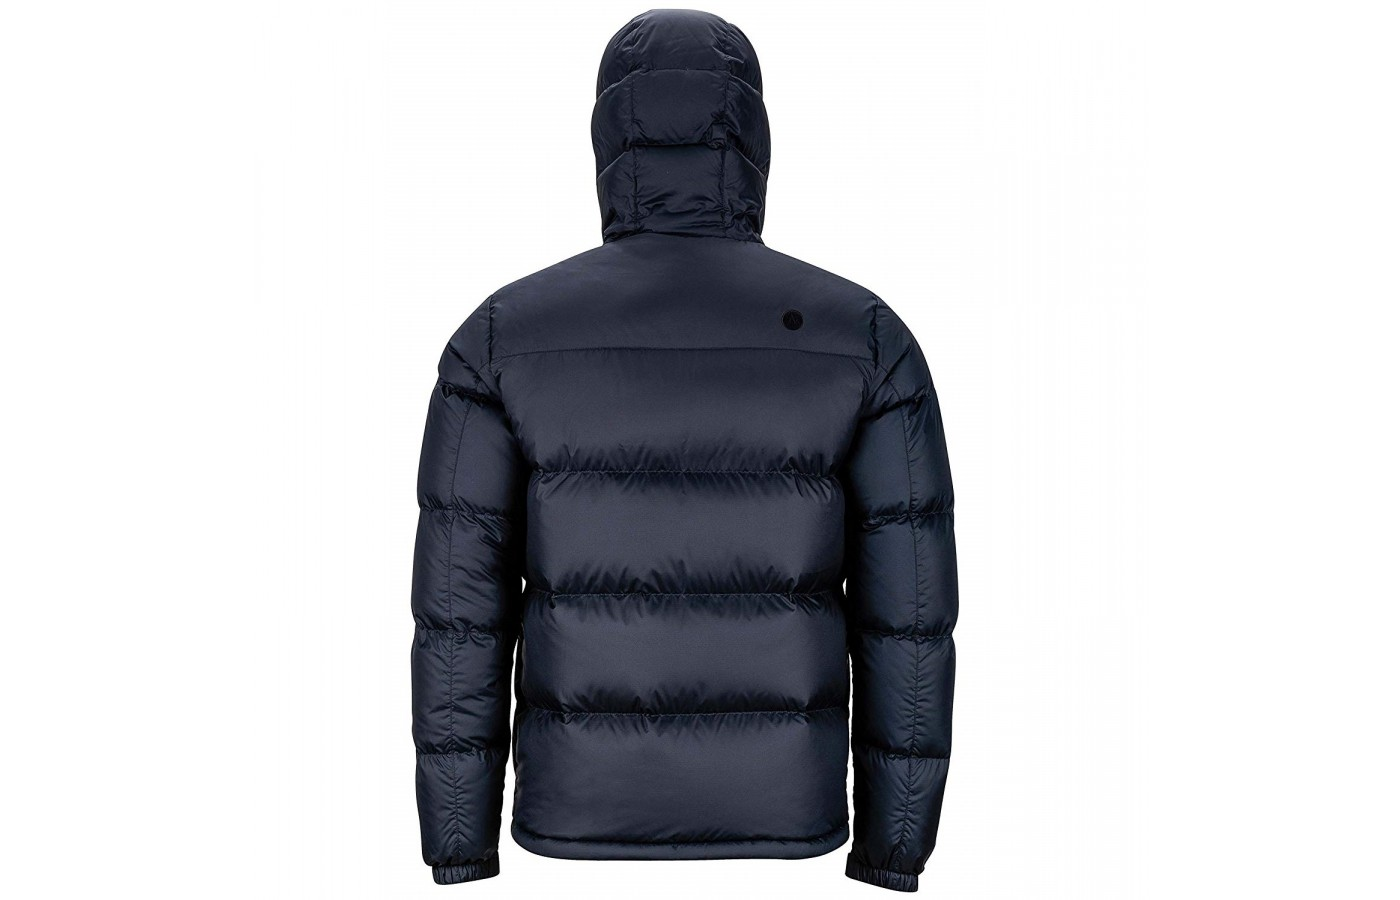 The Marmot Guides Down Hoody offers a down-filled hood and body for maximum warmth.